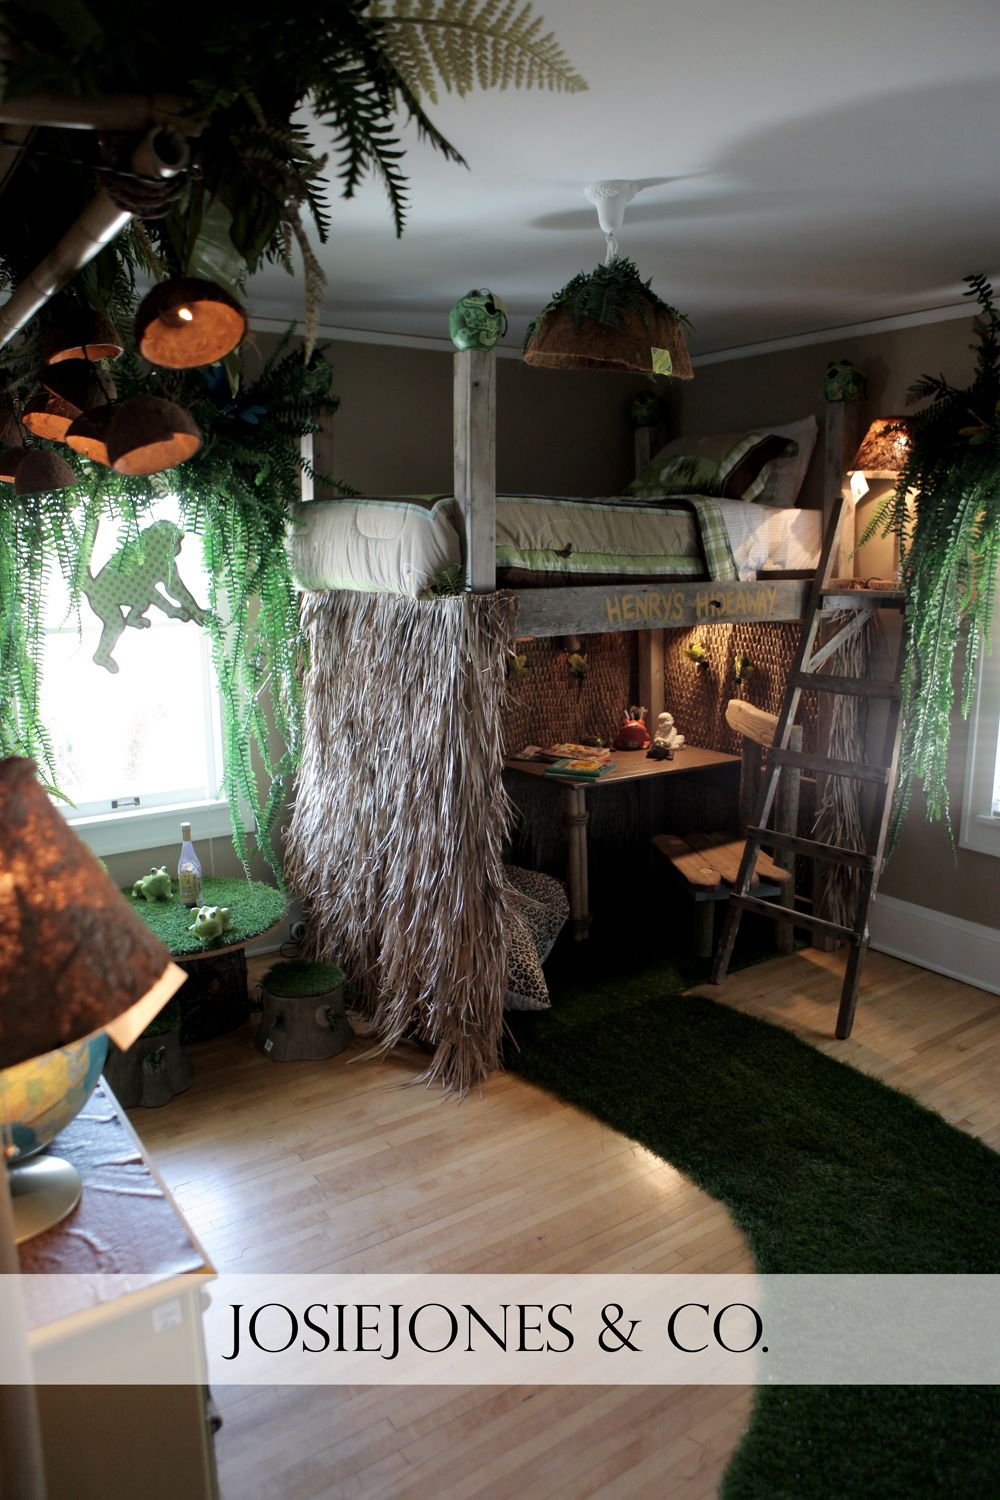 Img 4048 kid s room pinterest children s safari and for Bedroom ideas 8 year old boy